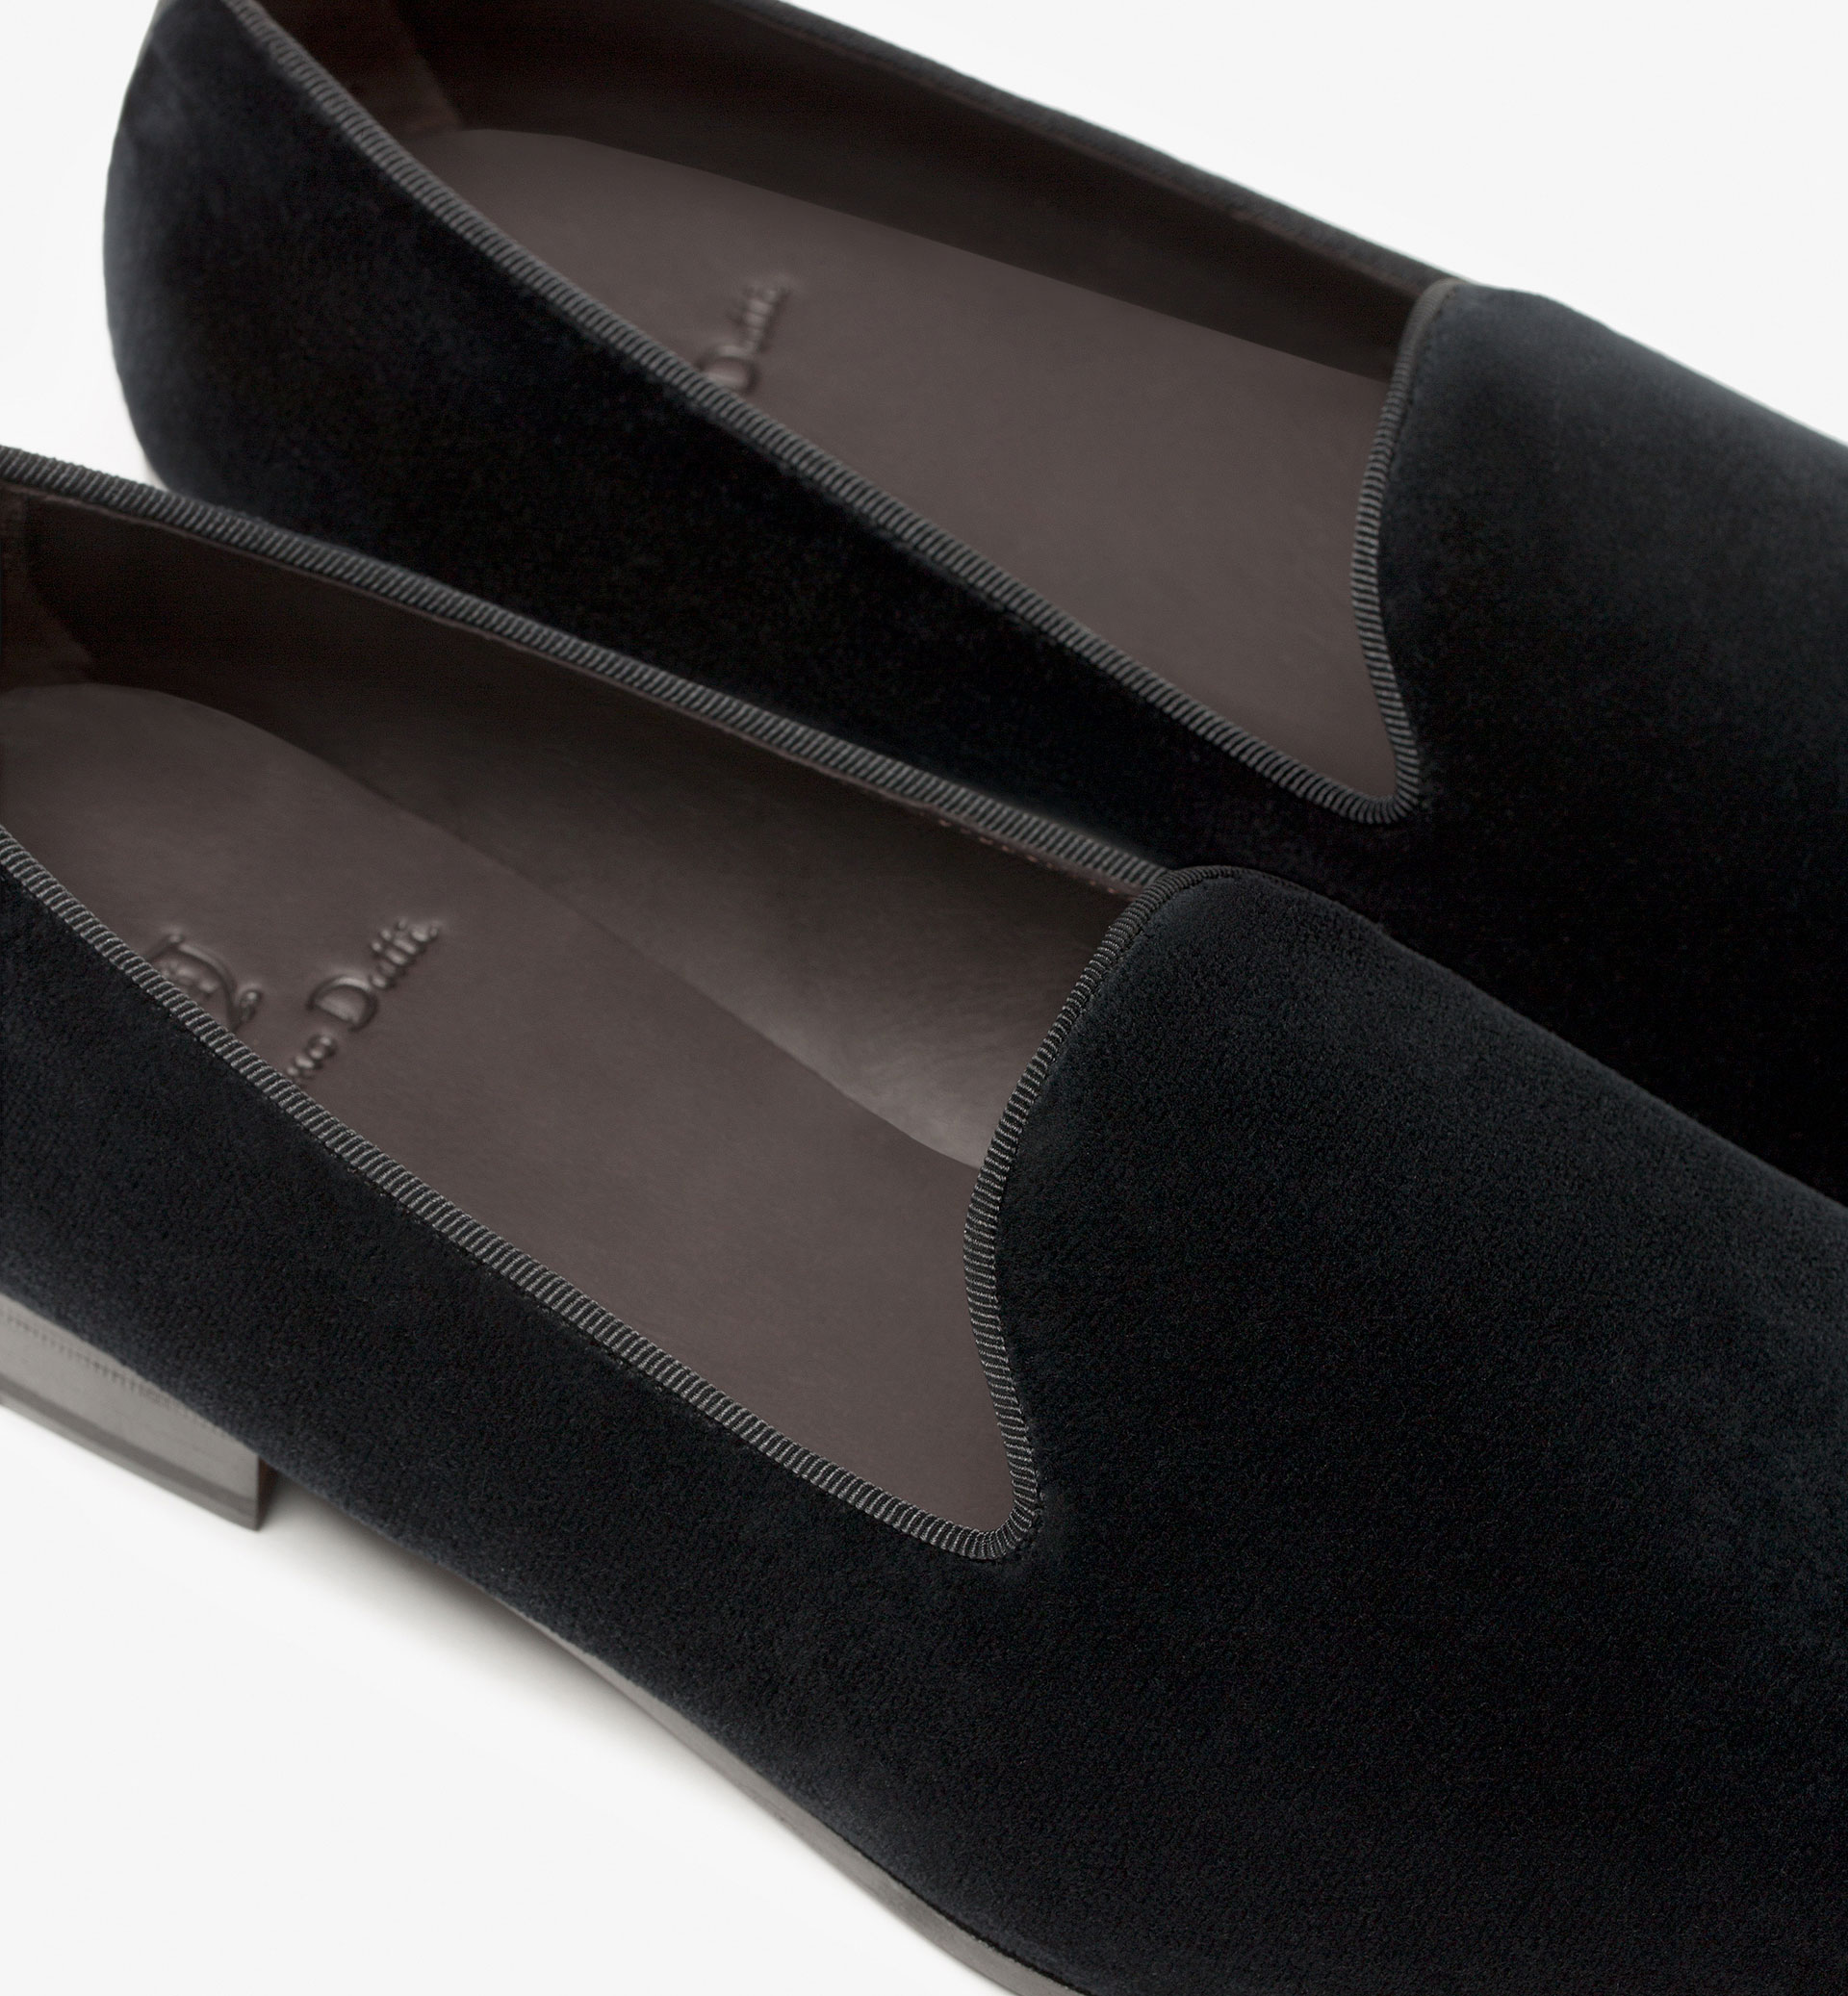 SLIPPER PEL NEGRA